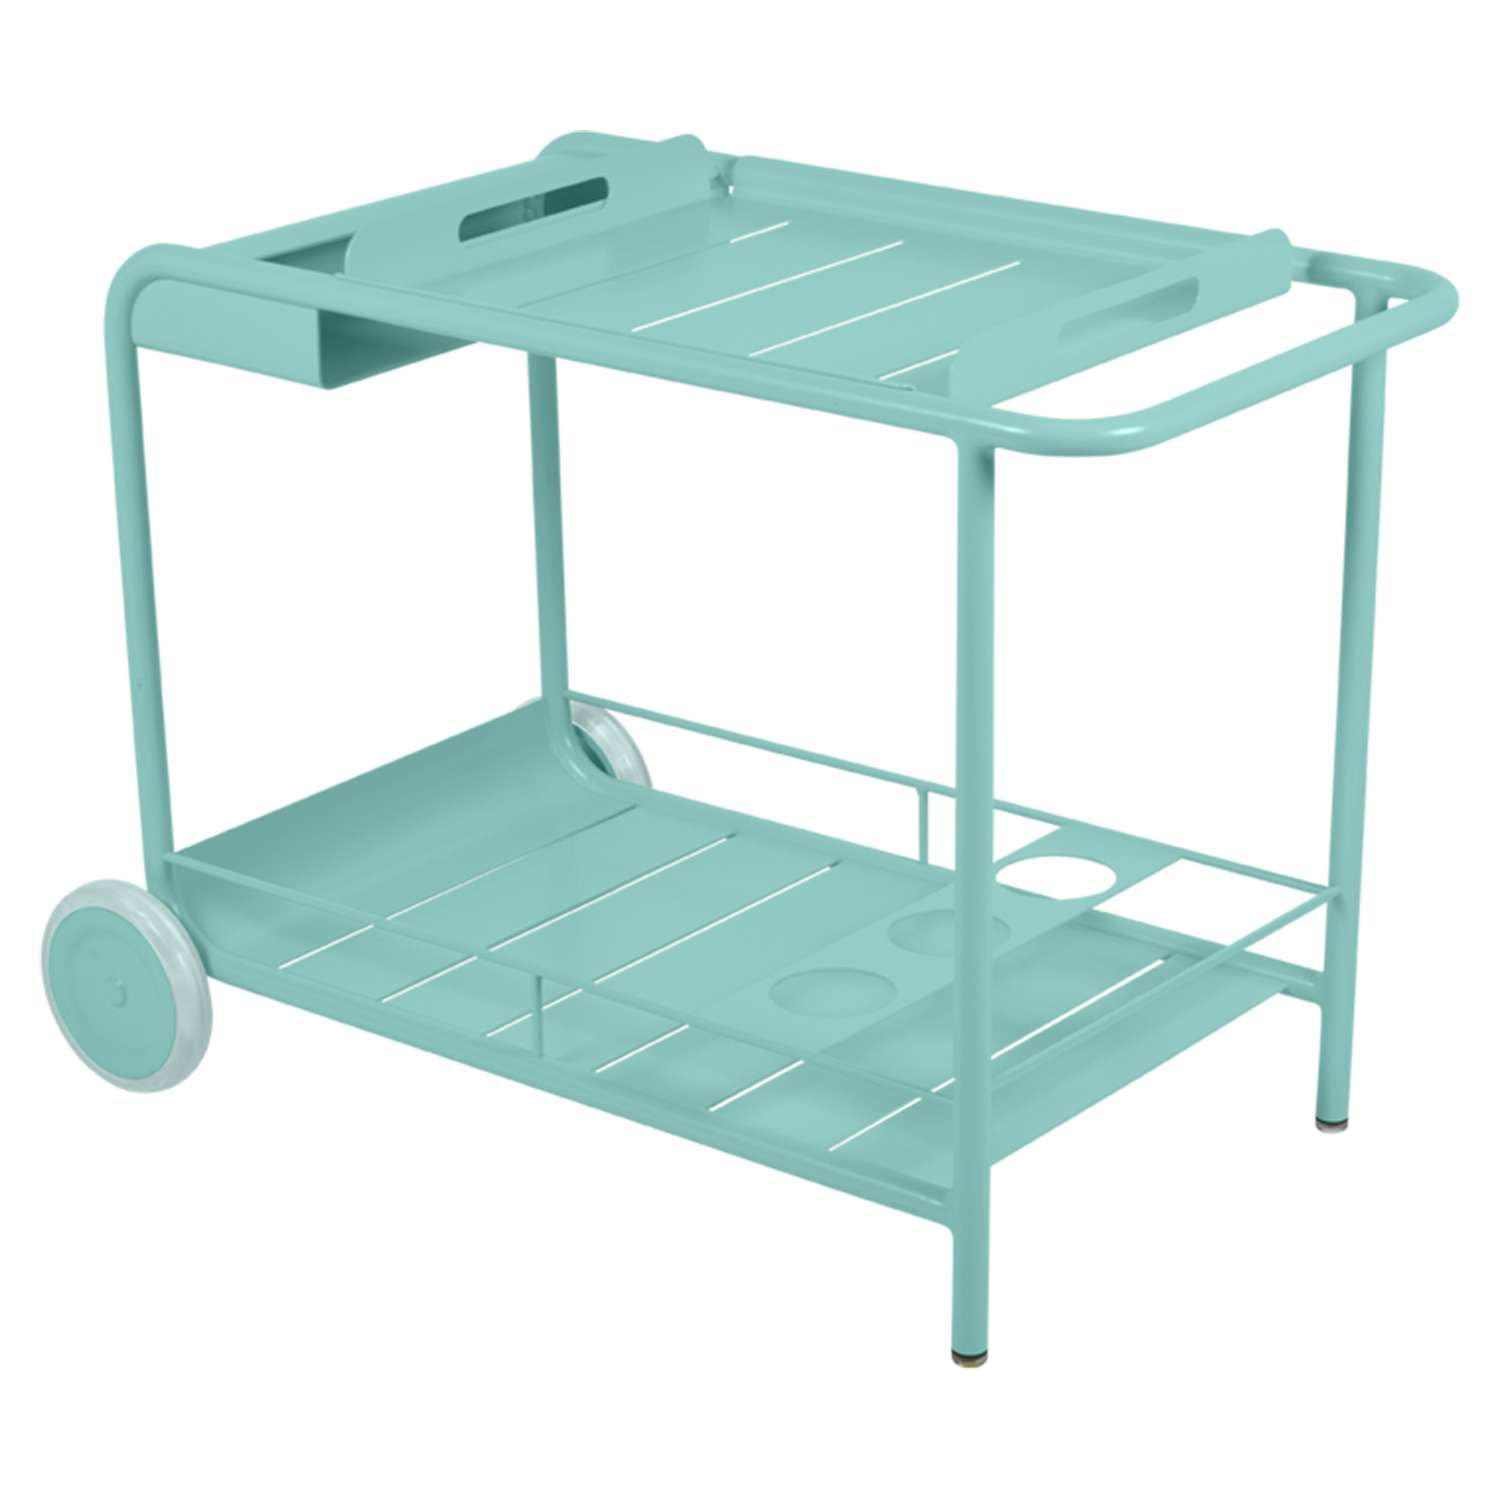 Luxembourg Bar Trolley | Bar trolley, Traditional bar carts and Bar ...